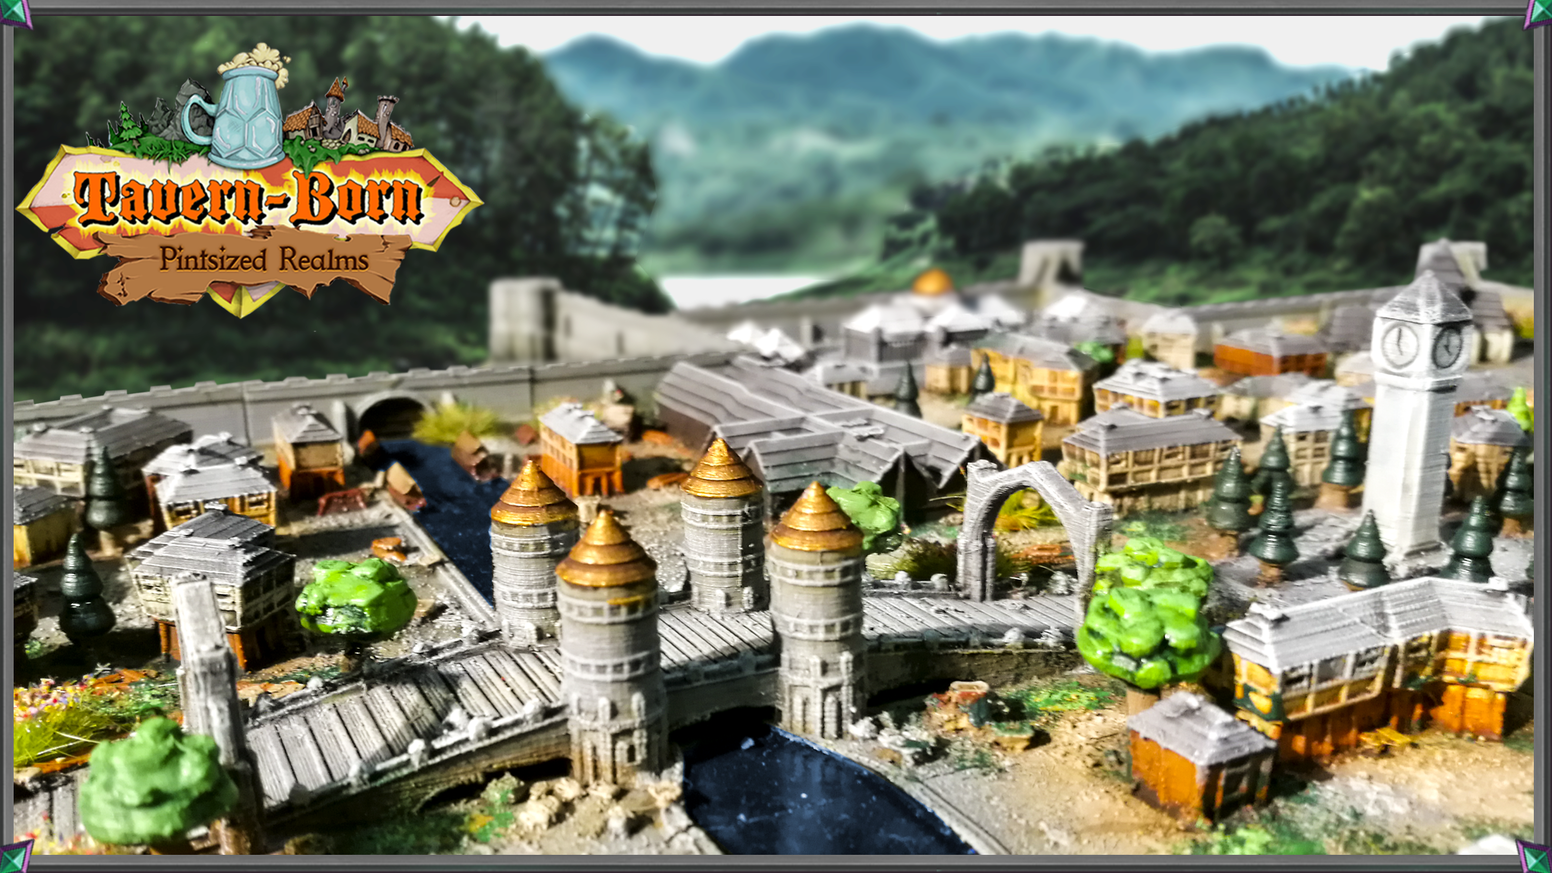 Late Pledges for Tavern-Born: Pintsized Realms is now Available on Backerkit. Click the link below for the store page